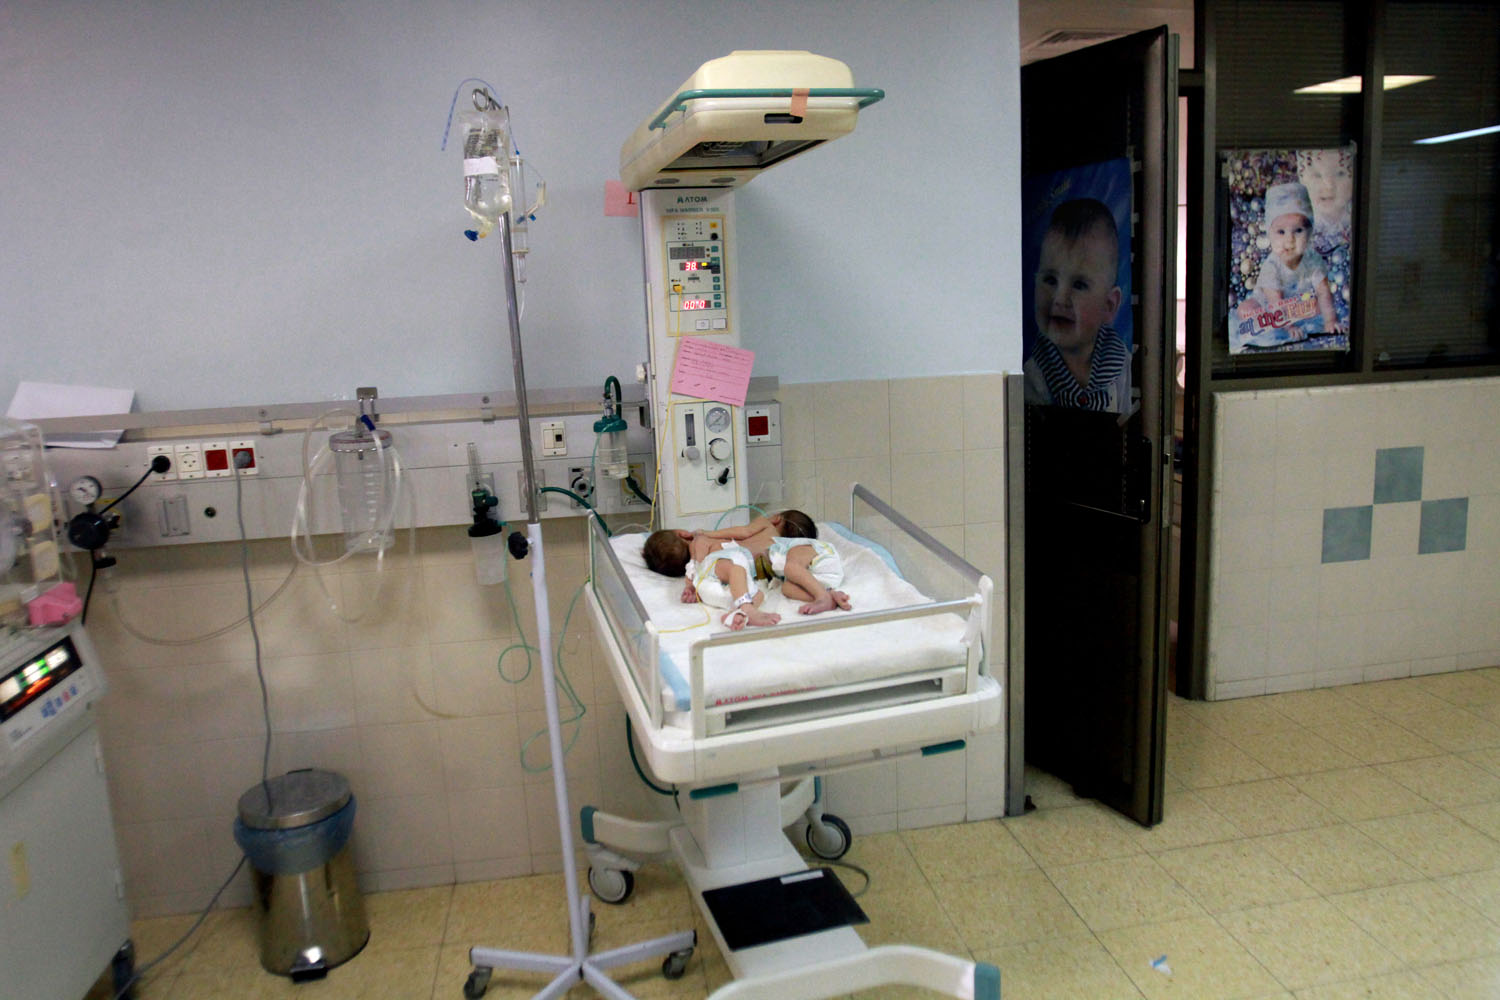 June 3, 2013. Conjoined Palestinian female twins receive treatment at a hospital in the West Bank city of Hebron.